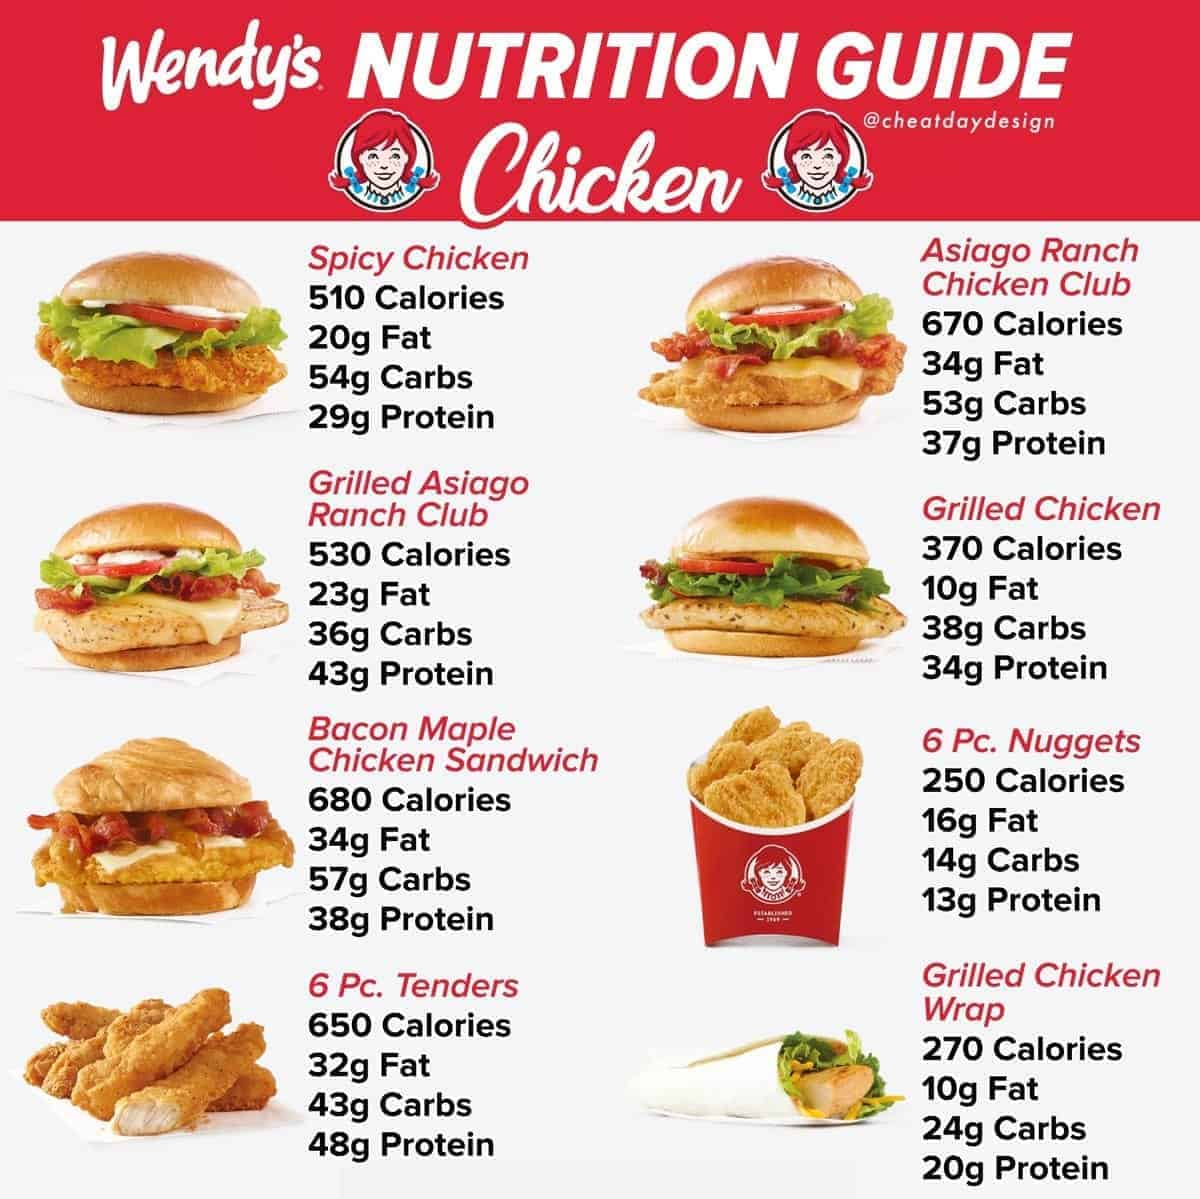 Full nutritional guide for Wendy's fast food chicken sandwiches